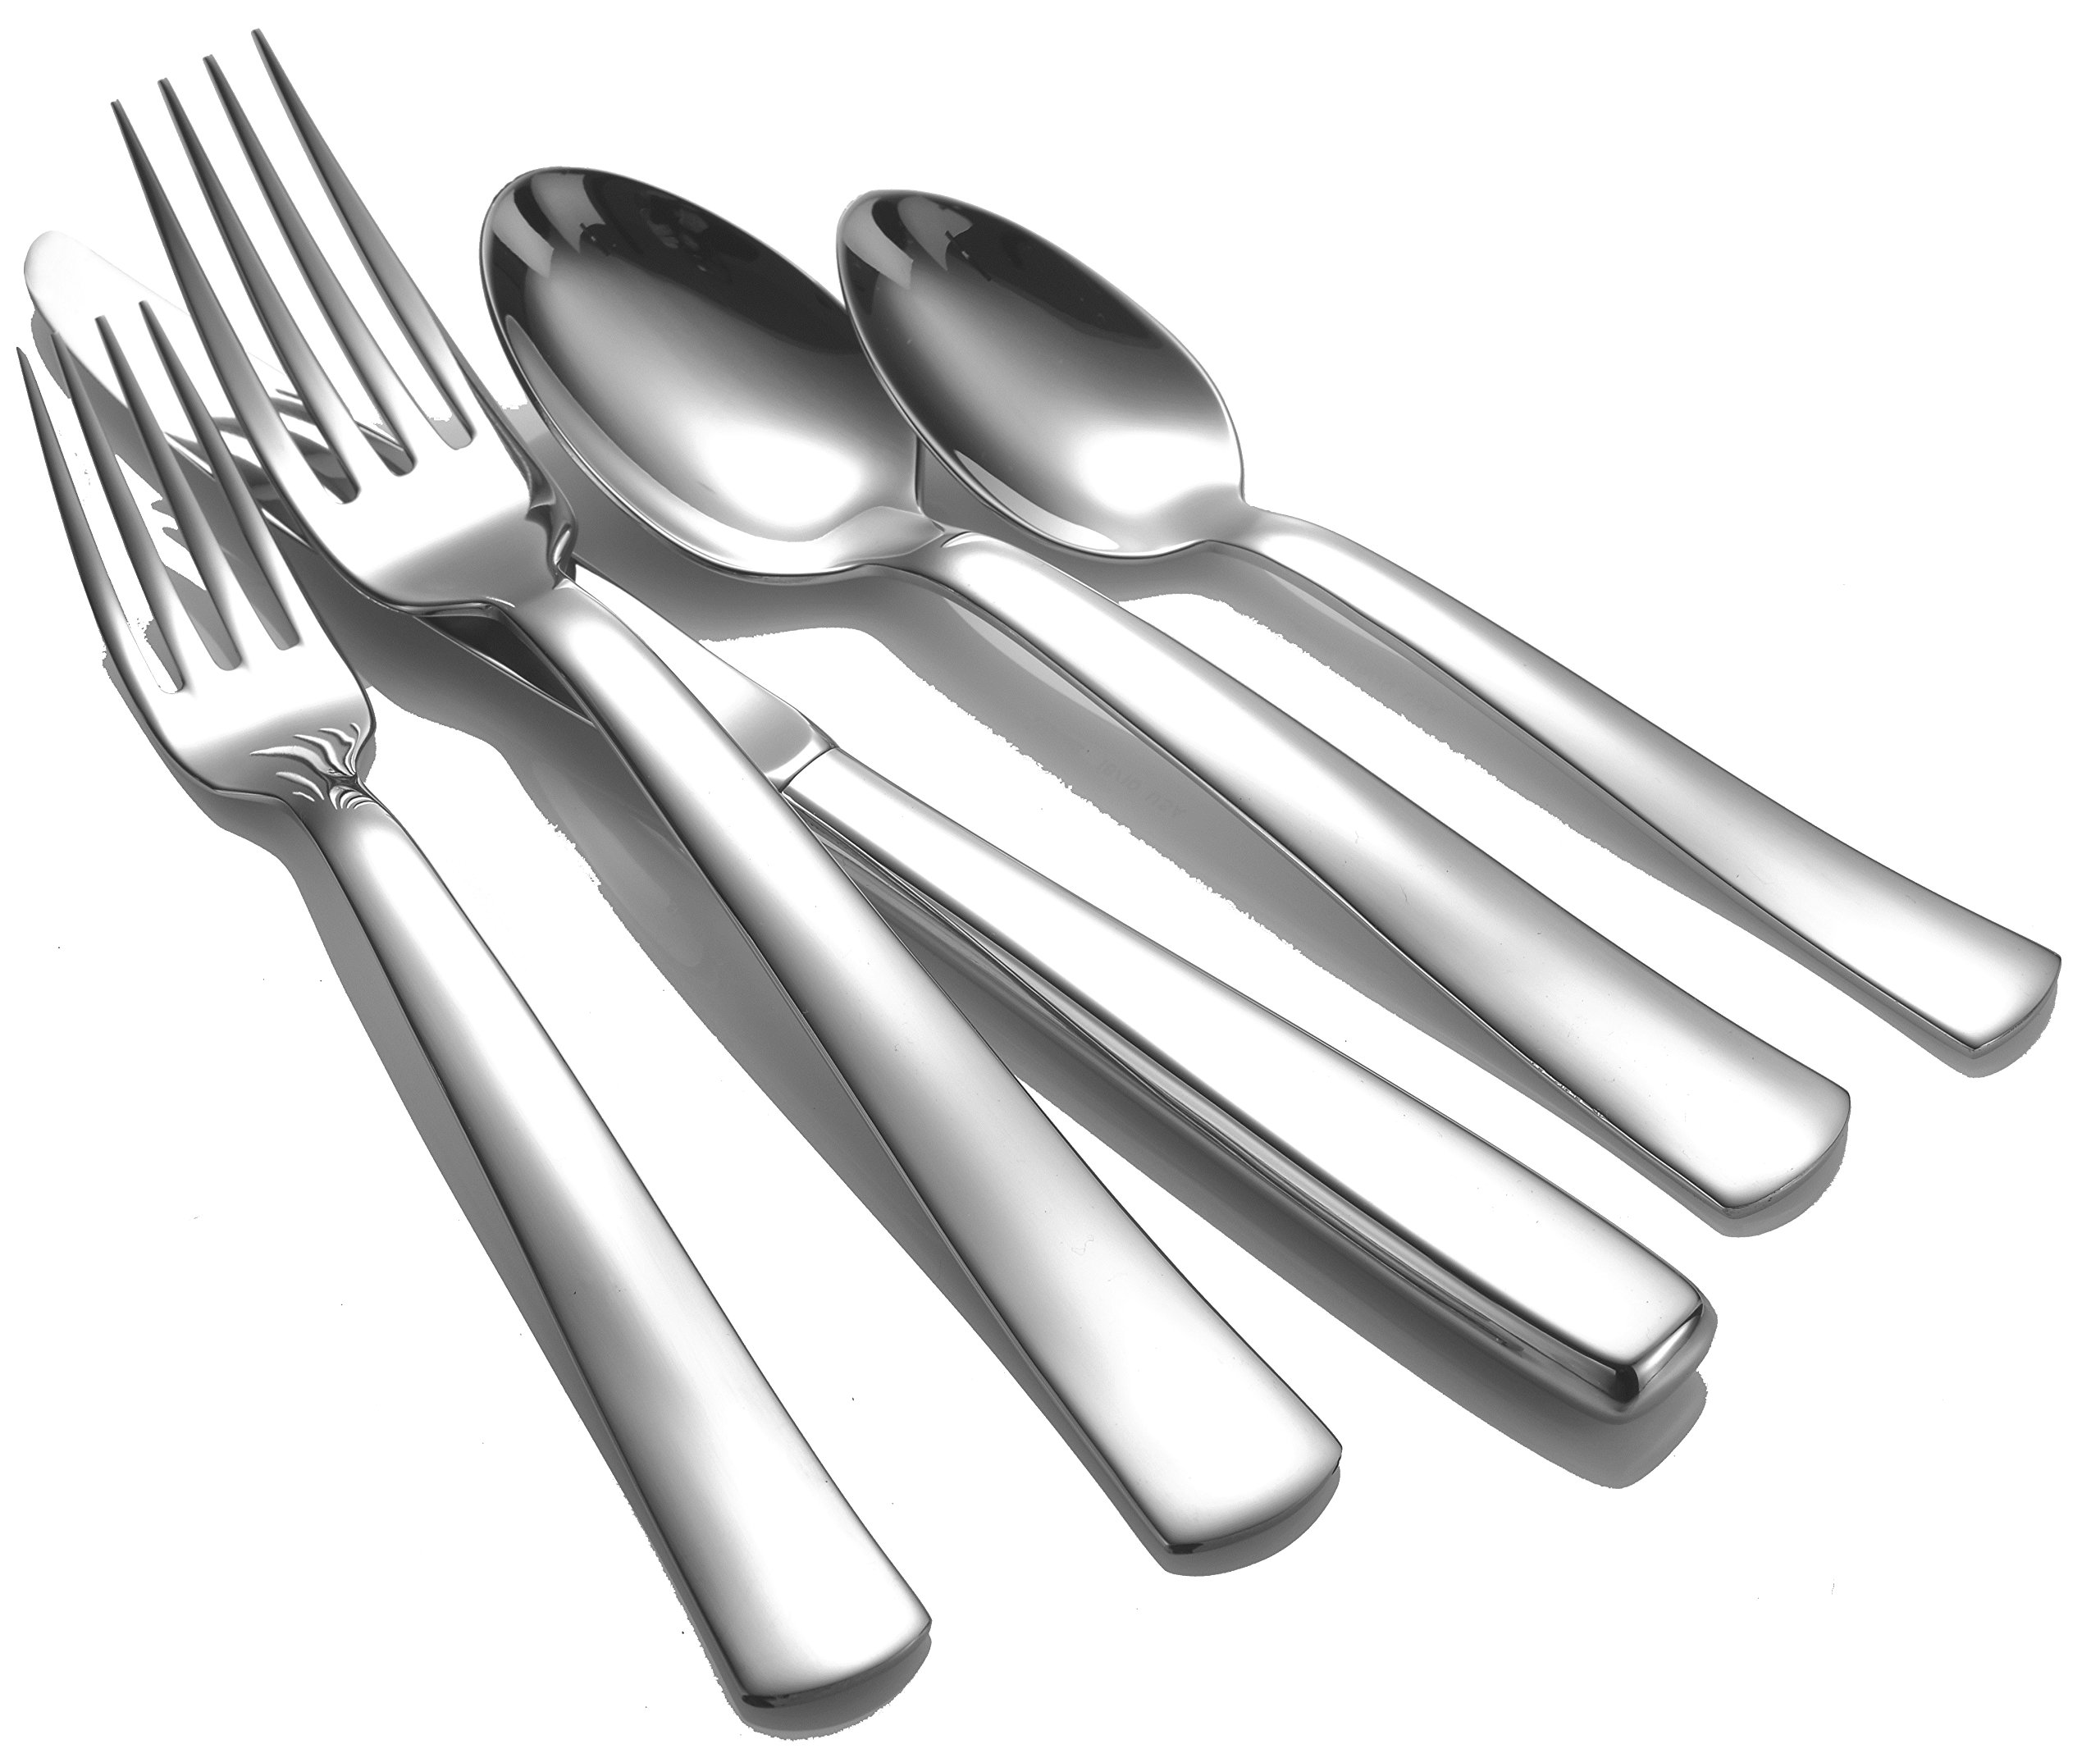 Liberty Tabletop Modern America 65-piece 18/10 Flatware Set for 12, Includes Serving Pieces Made in USA by Liberty Tabletop